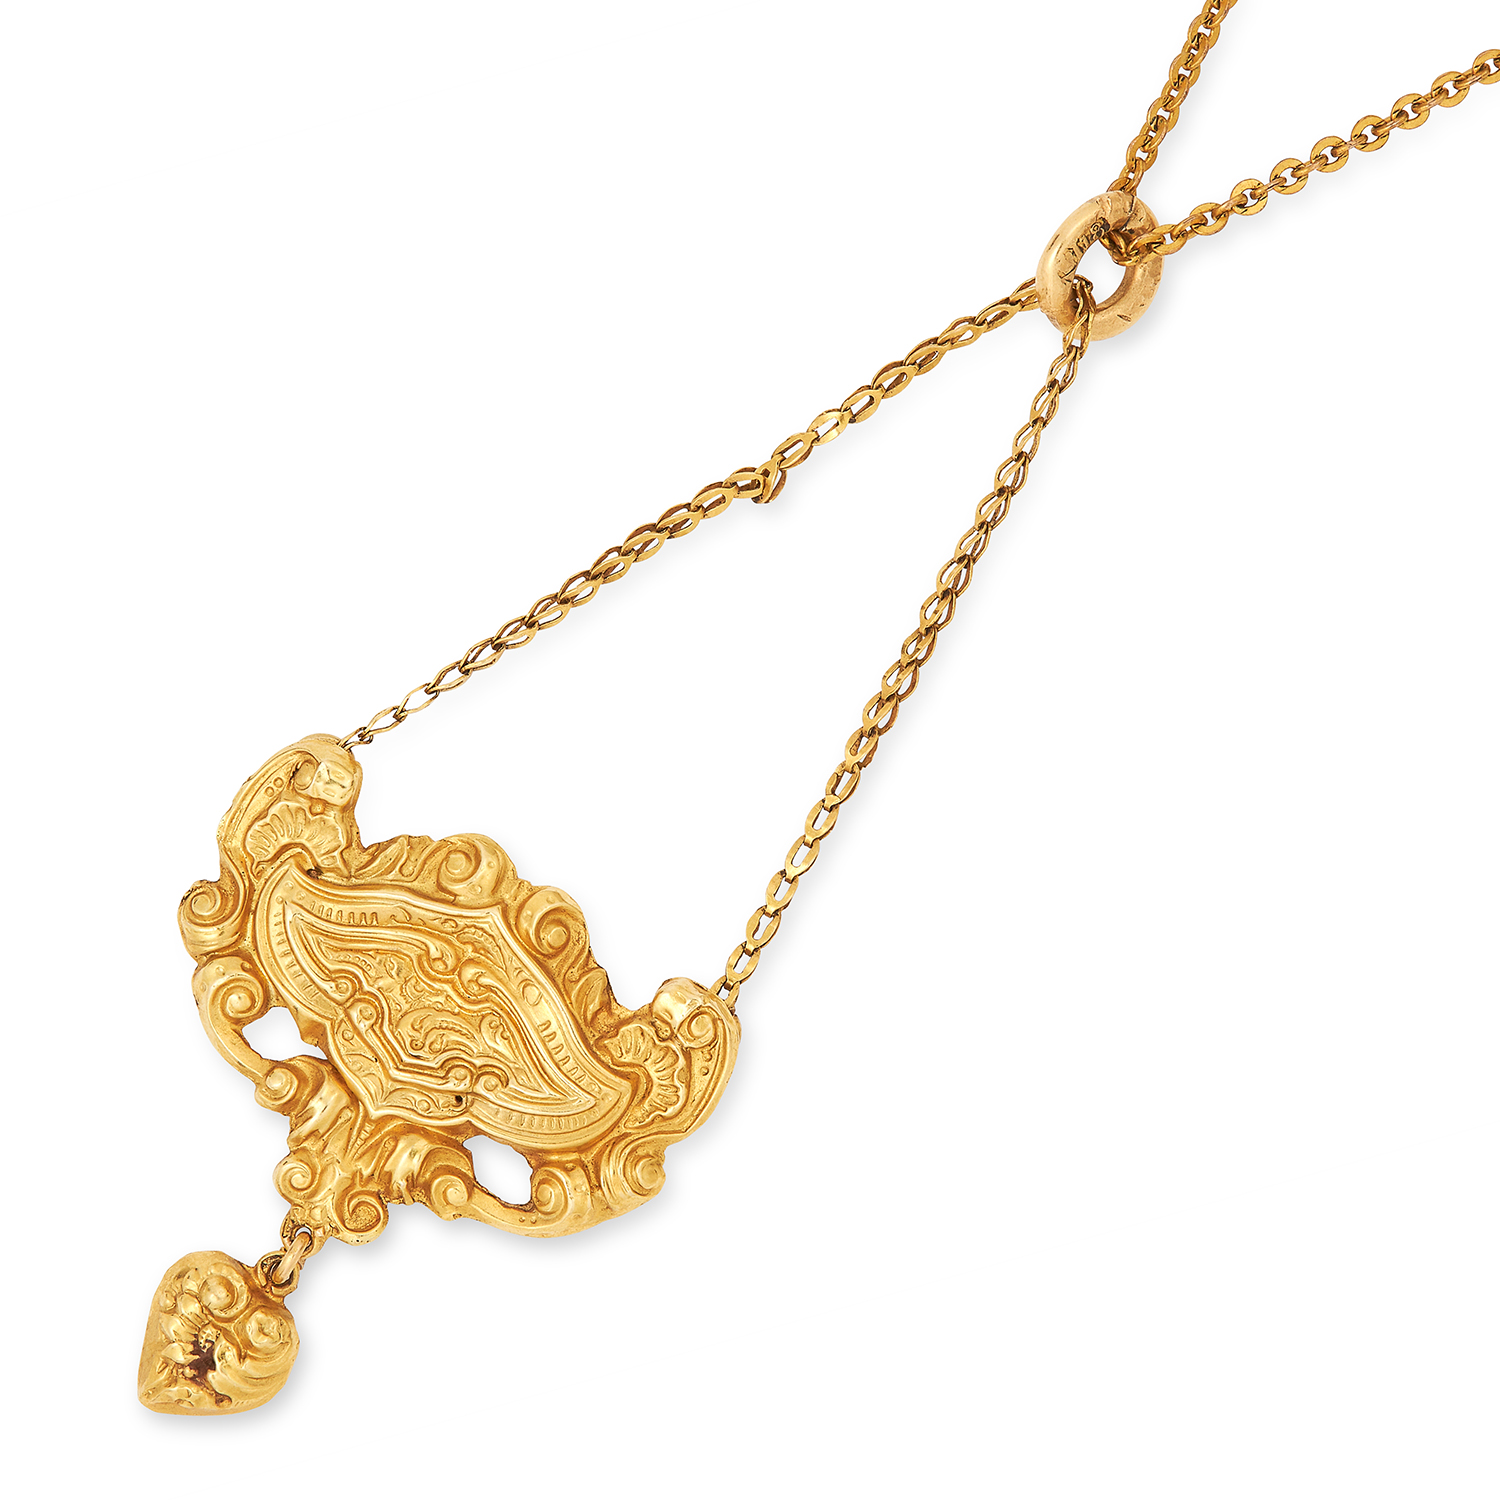 Los 235 - ANTIQUE PENDANT decorated with rococo scrolling foliate motif, 2.5g.